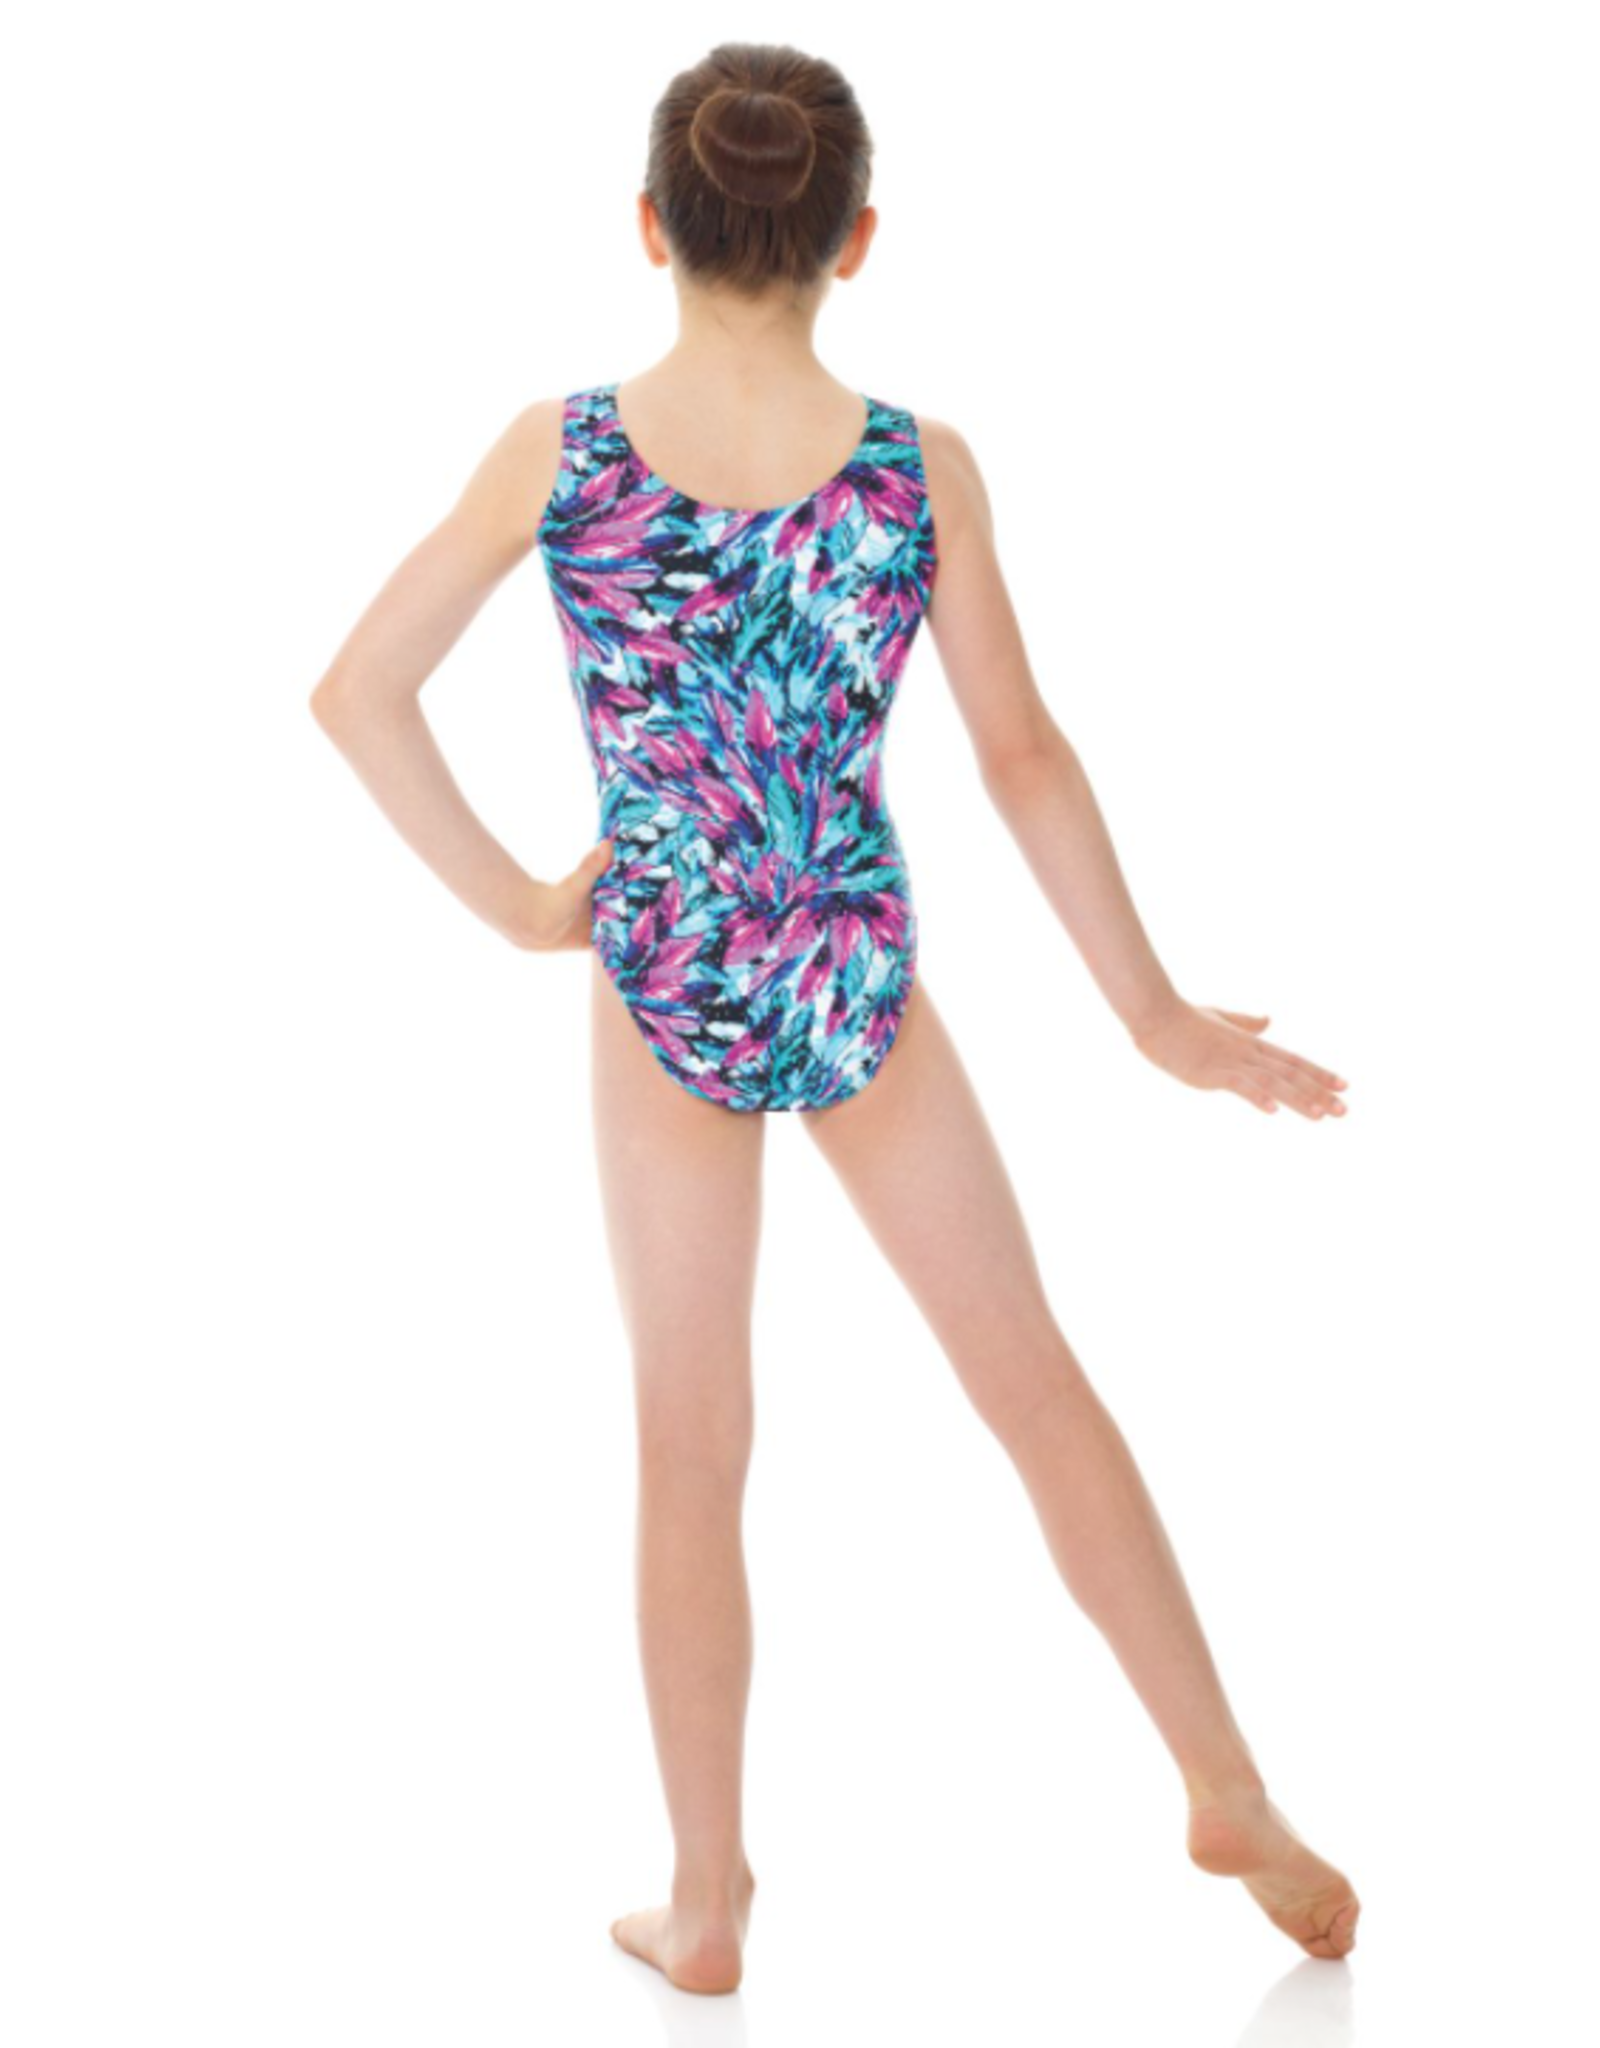 MONDOR SLEEVELESS GYM LEOTARD (7822)